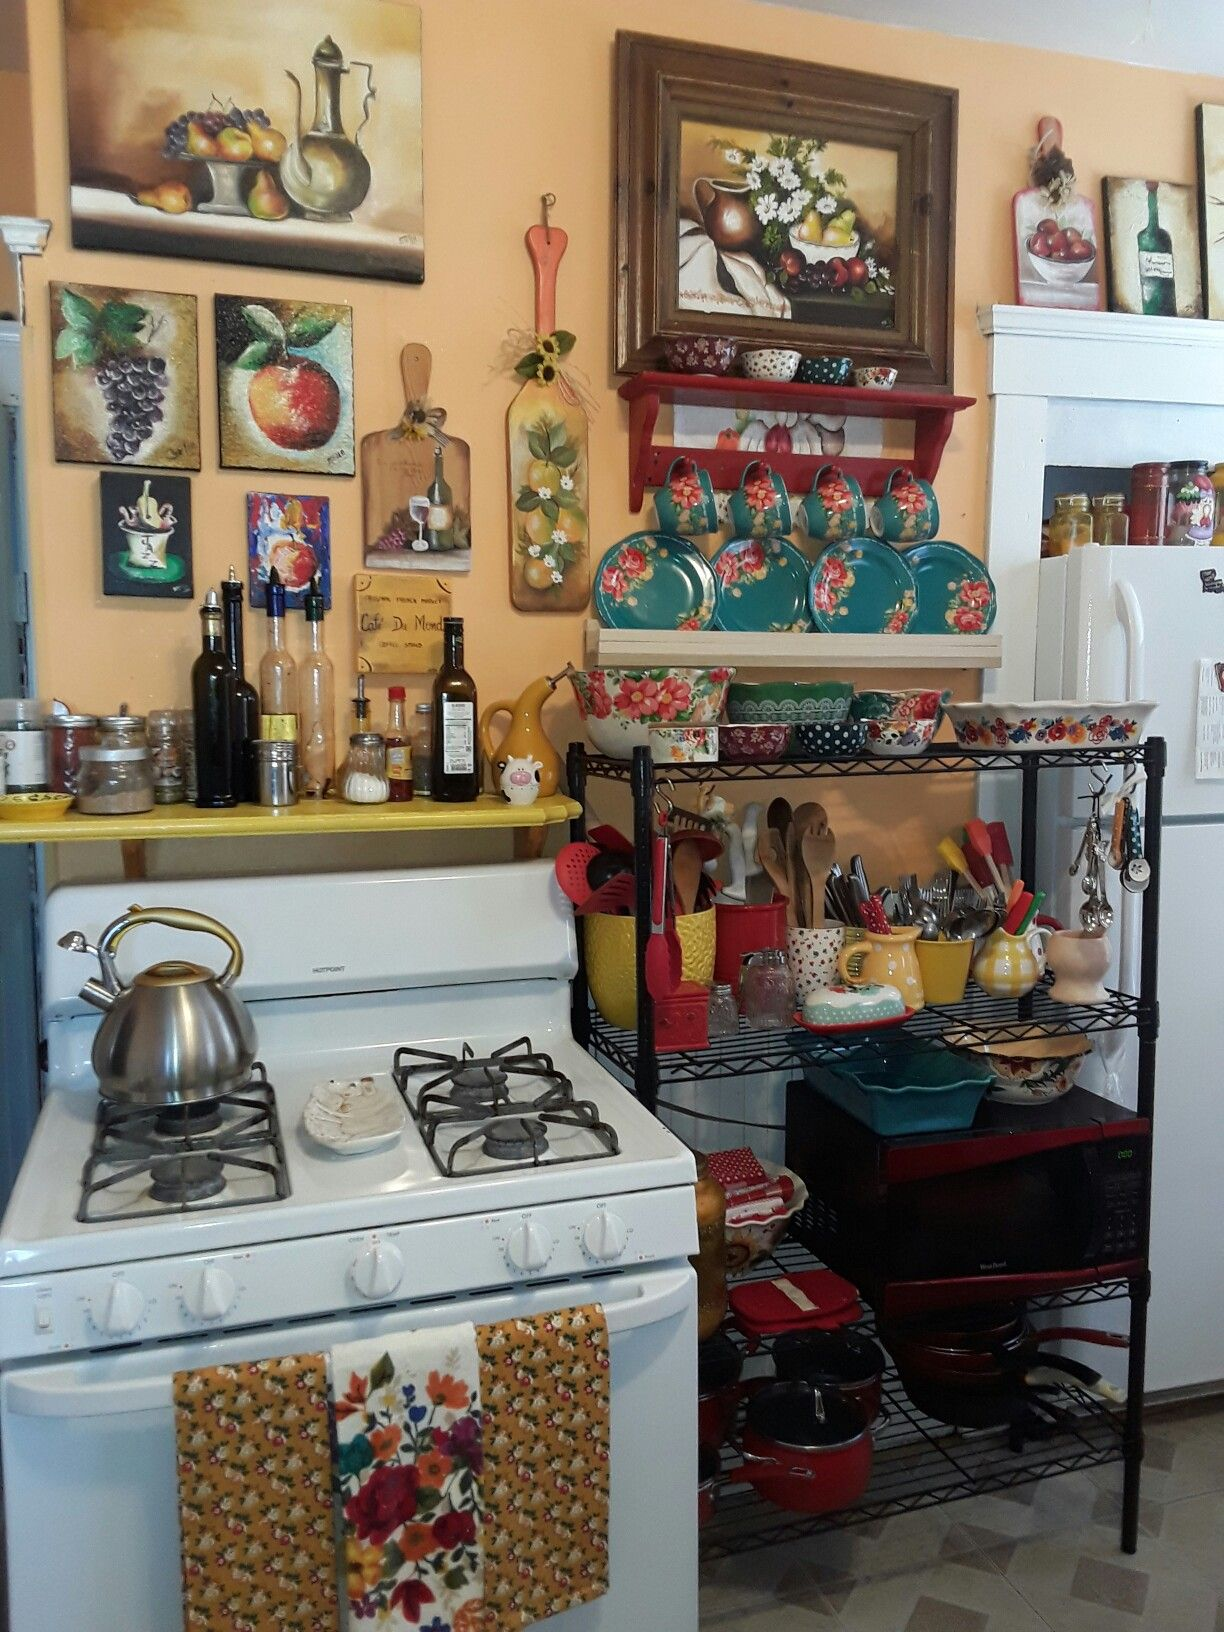 Pin by Amor E Arte on my pioneer | Pioneer woman kitchen ...